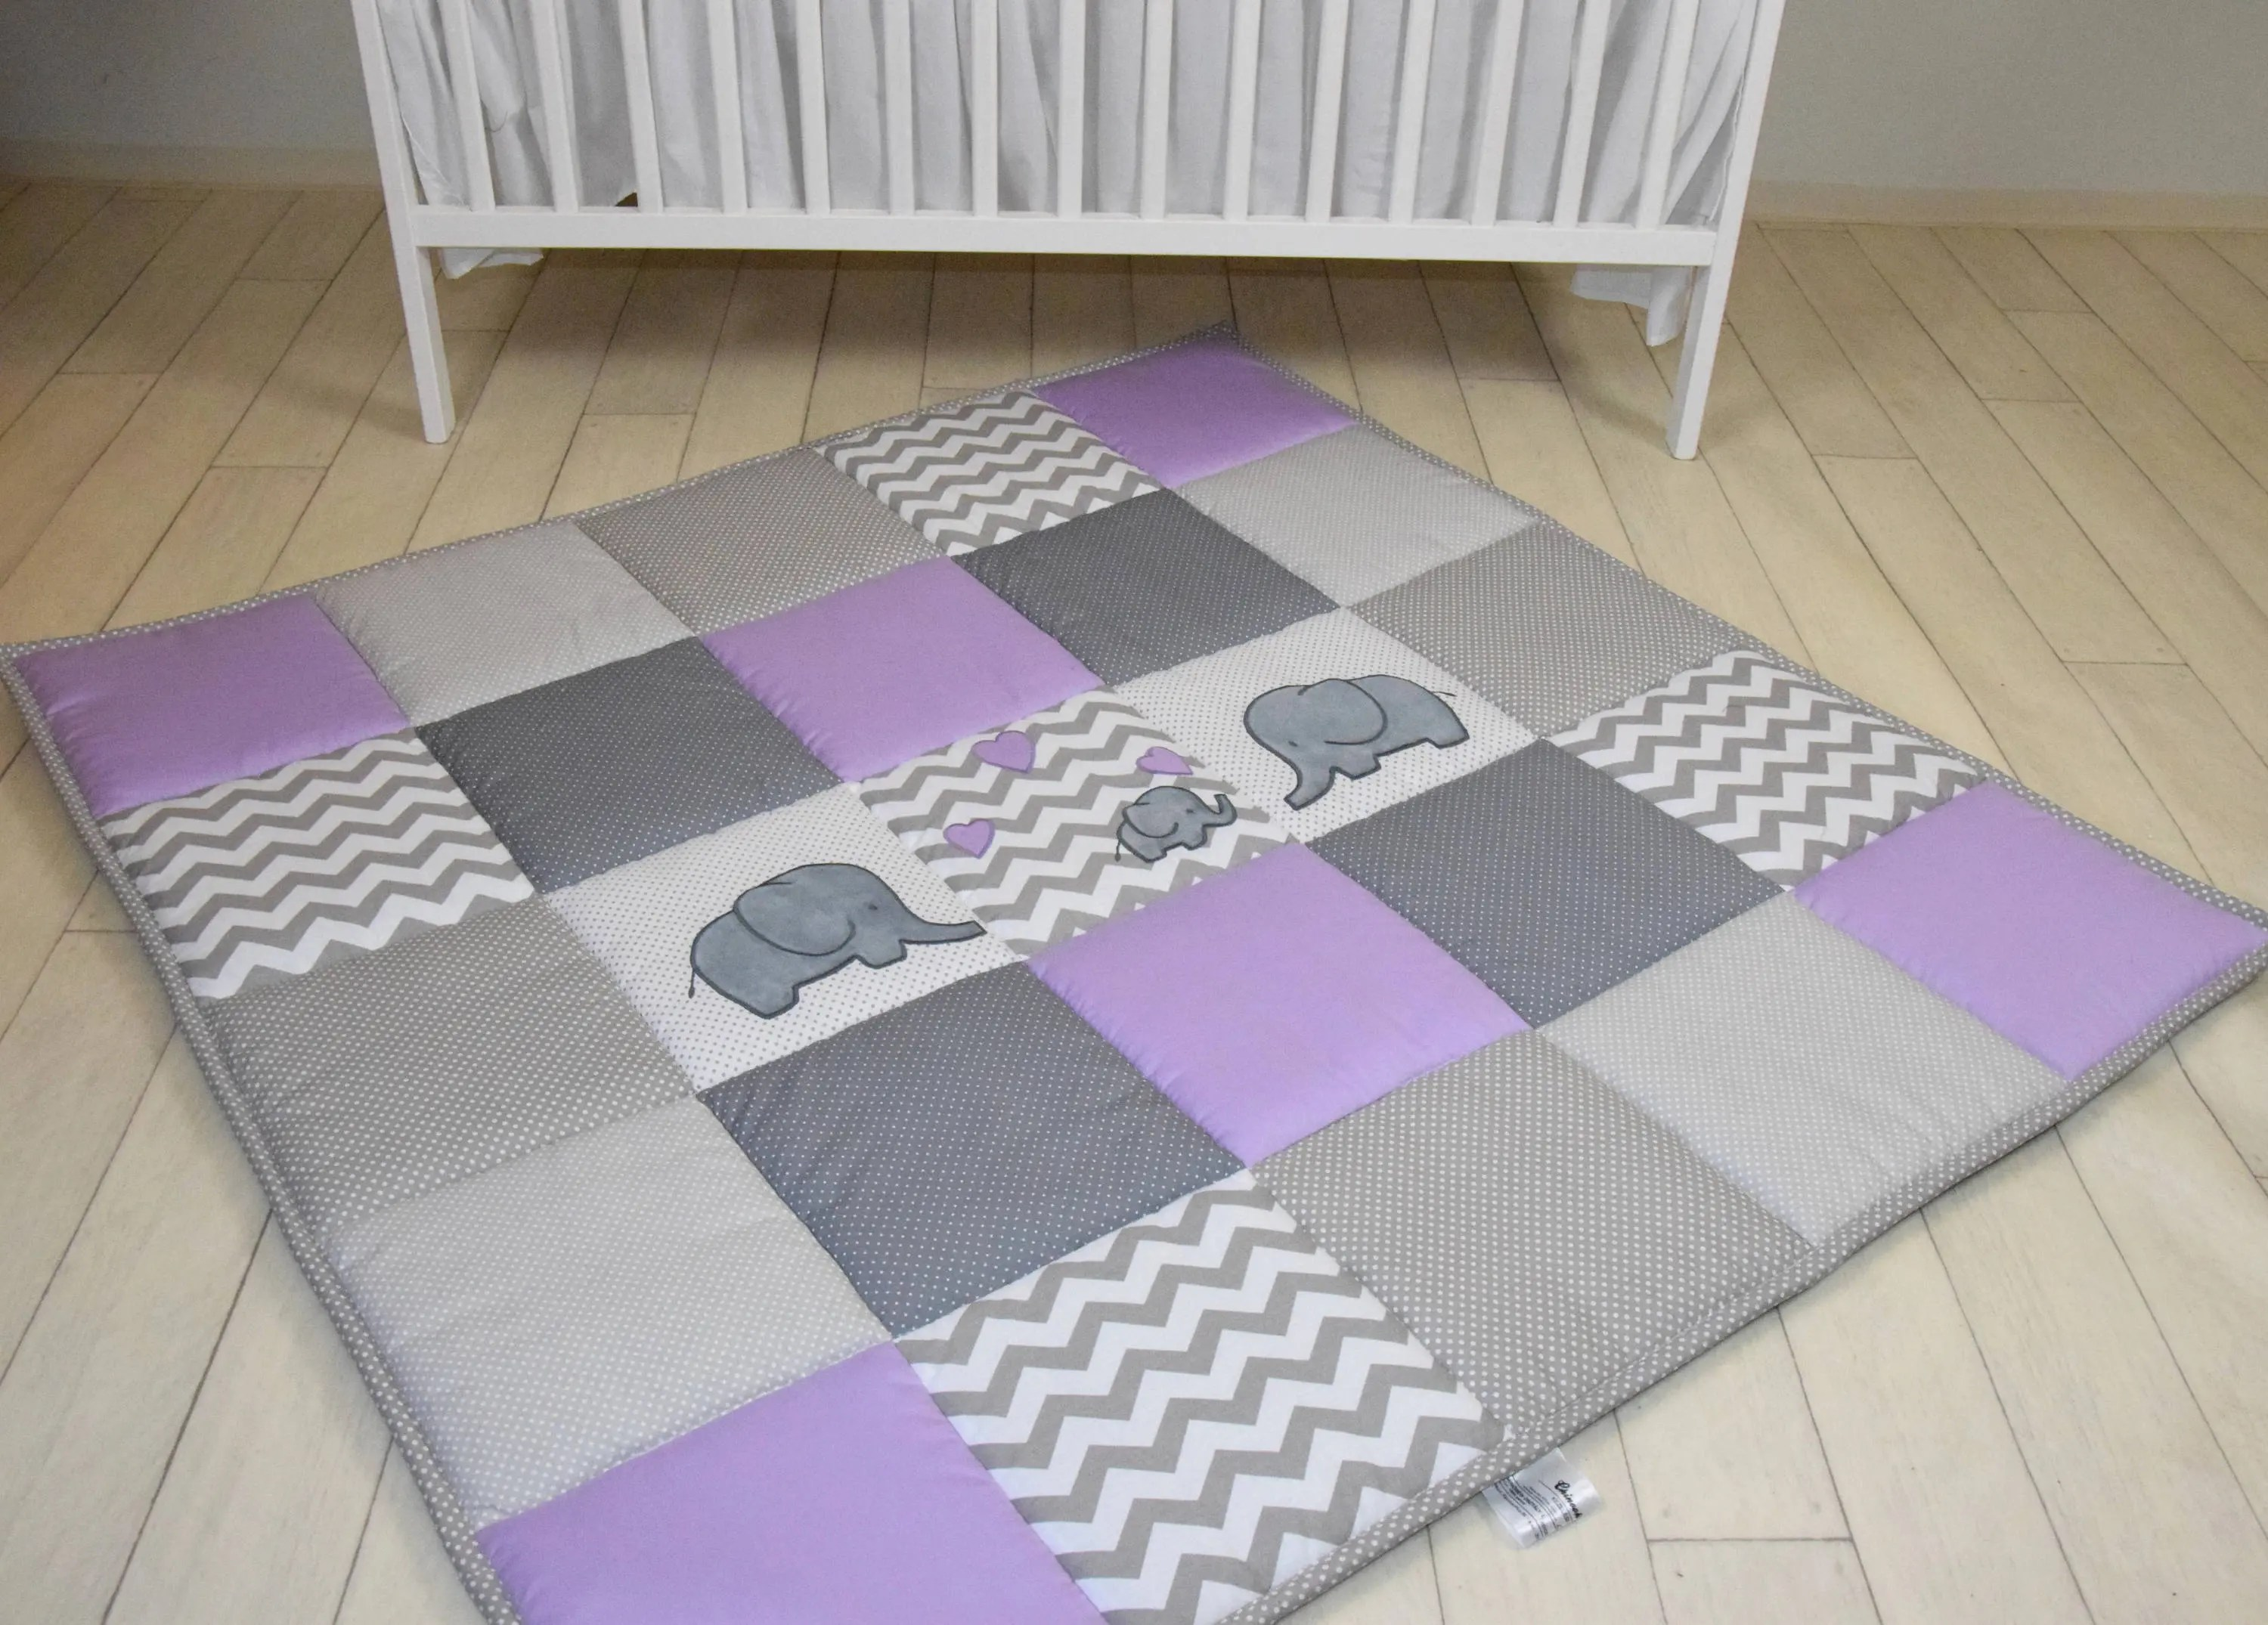 Calmly Girls Baby Playmat Baby Playmat Elephant Playmat Purple Play Mat Gym Crawl Mat Babymat Thick Large Soft Baptism Gift Gallery Boys Blossom Farm Belle Bunny Sit Me Up Cosy baby Baby Play Mat